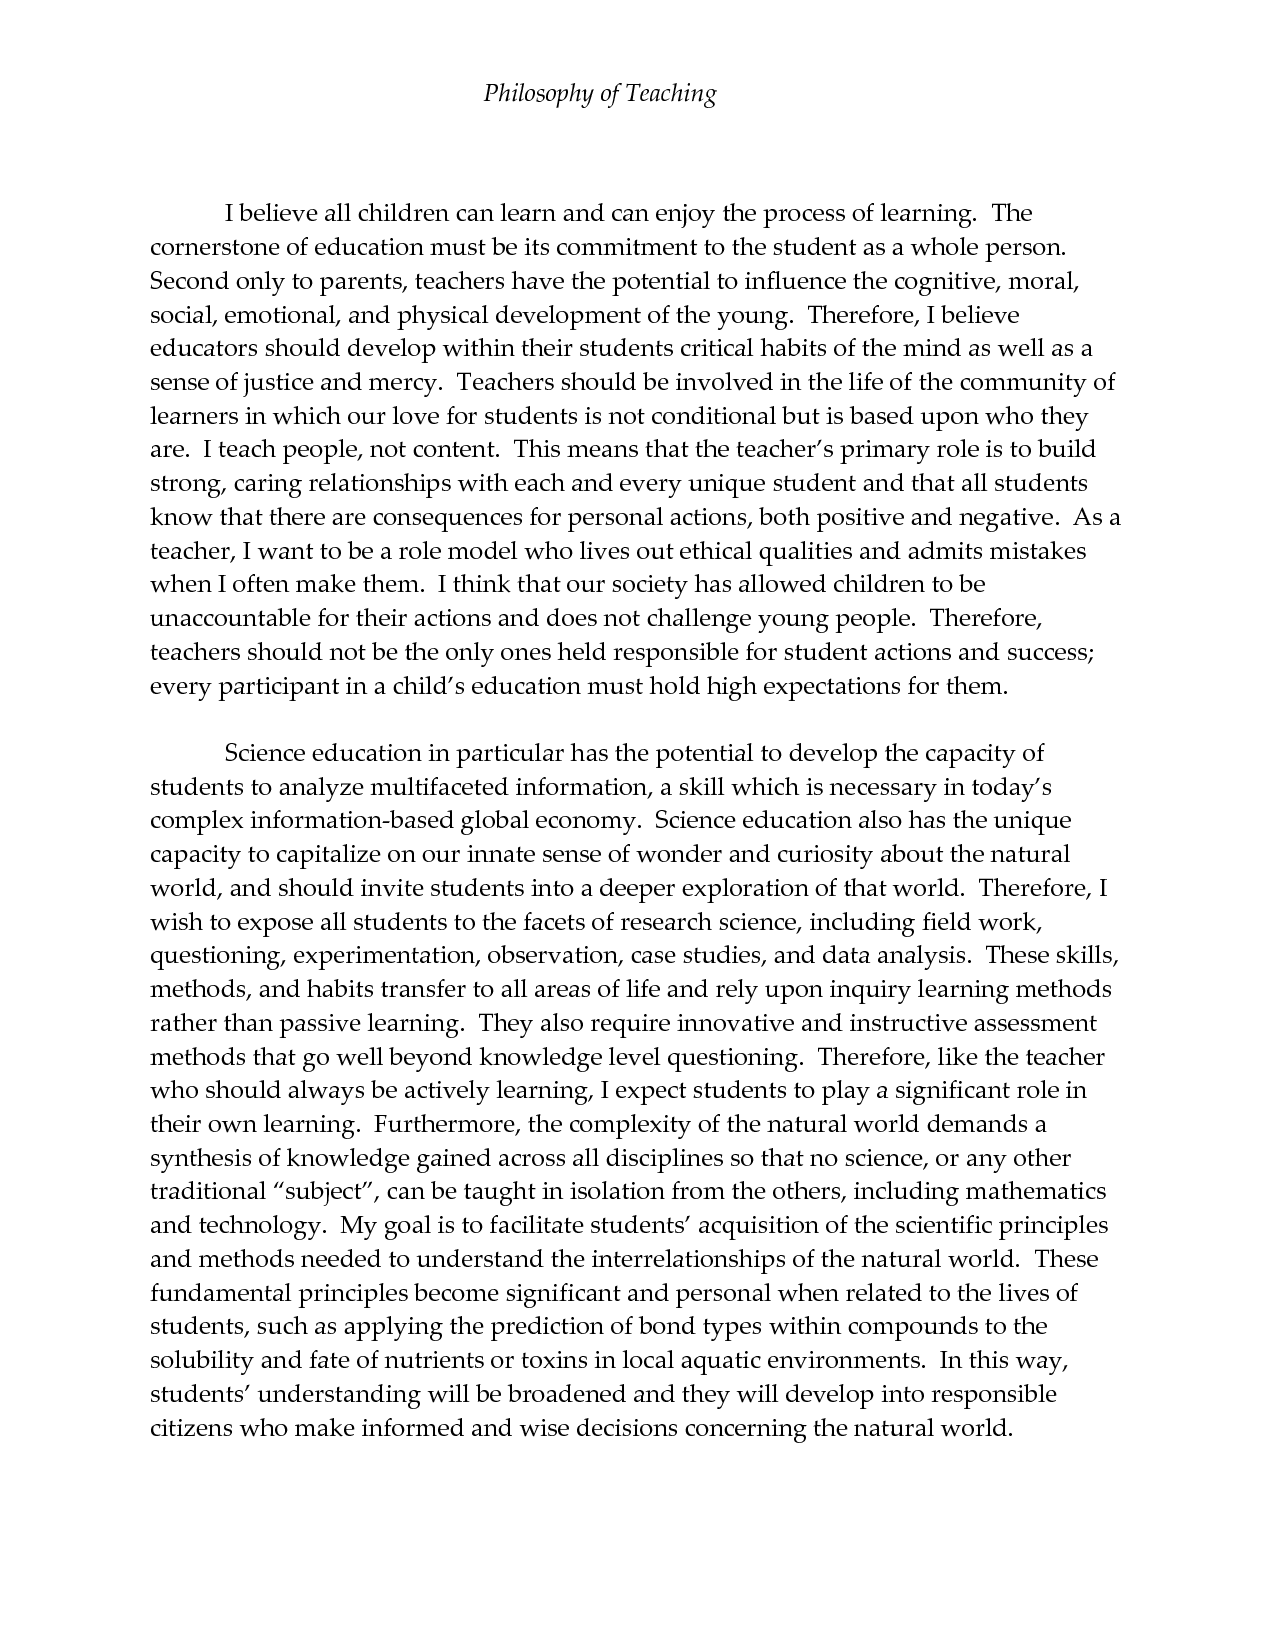 Personal teaching philosophy paper problem statement thesis